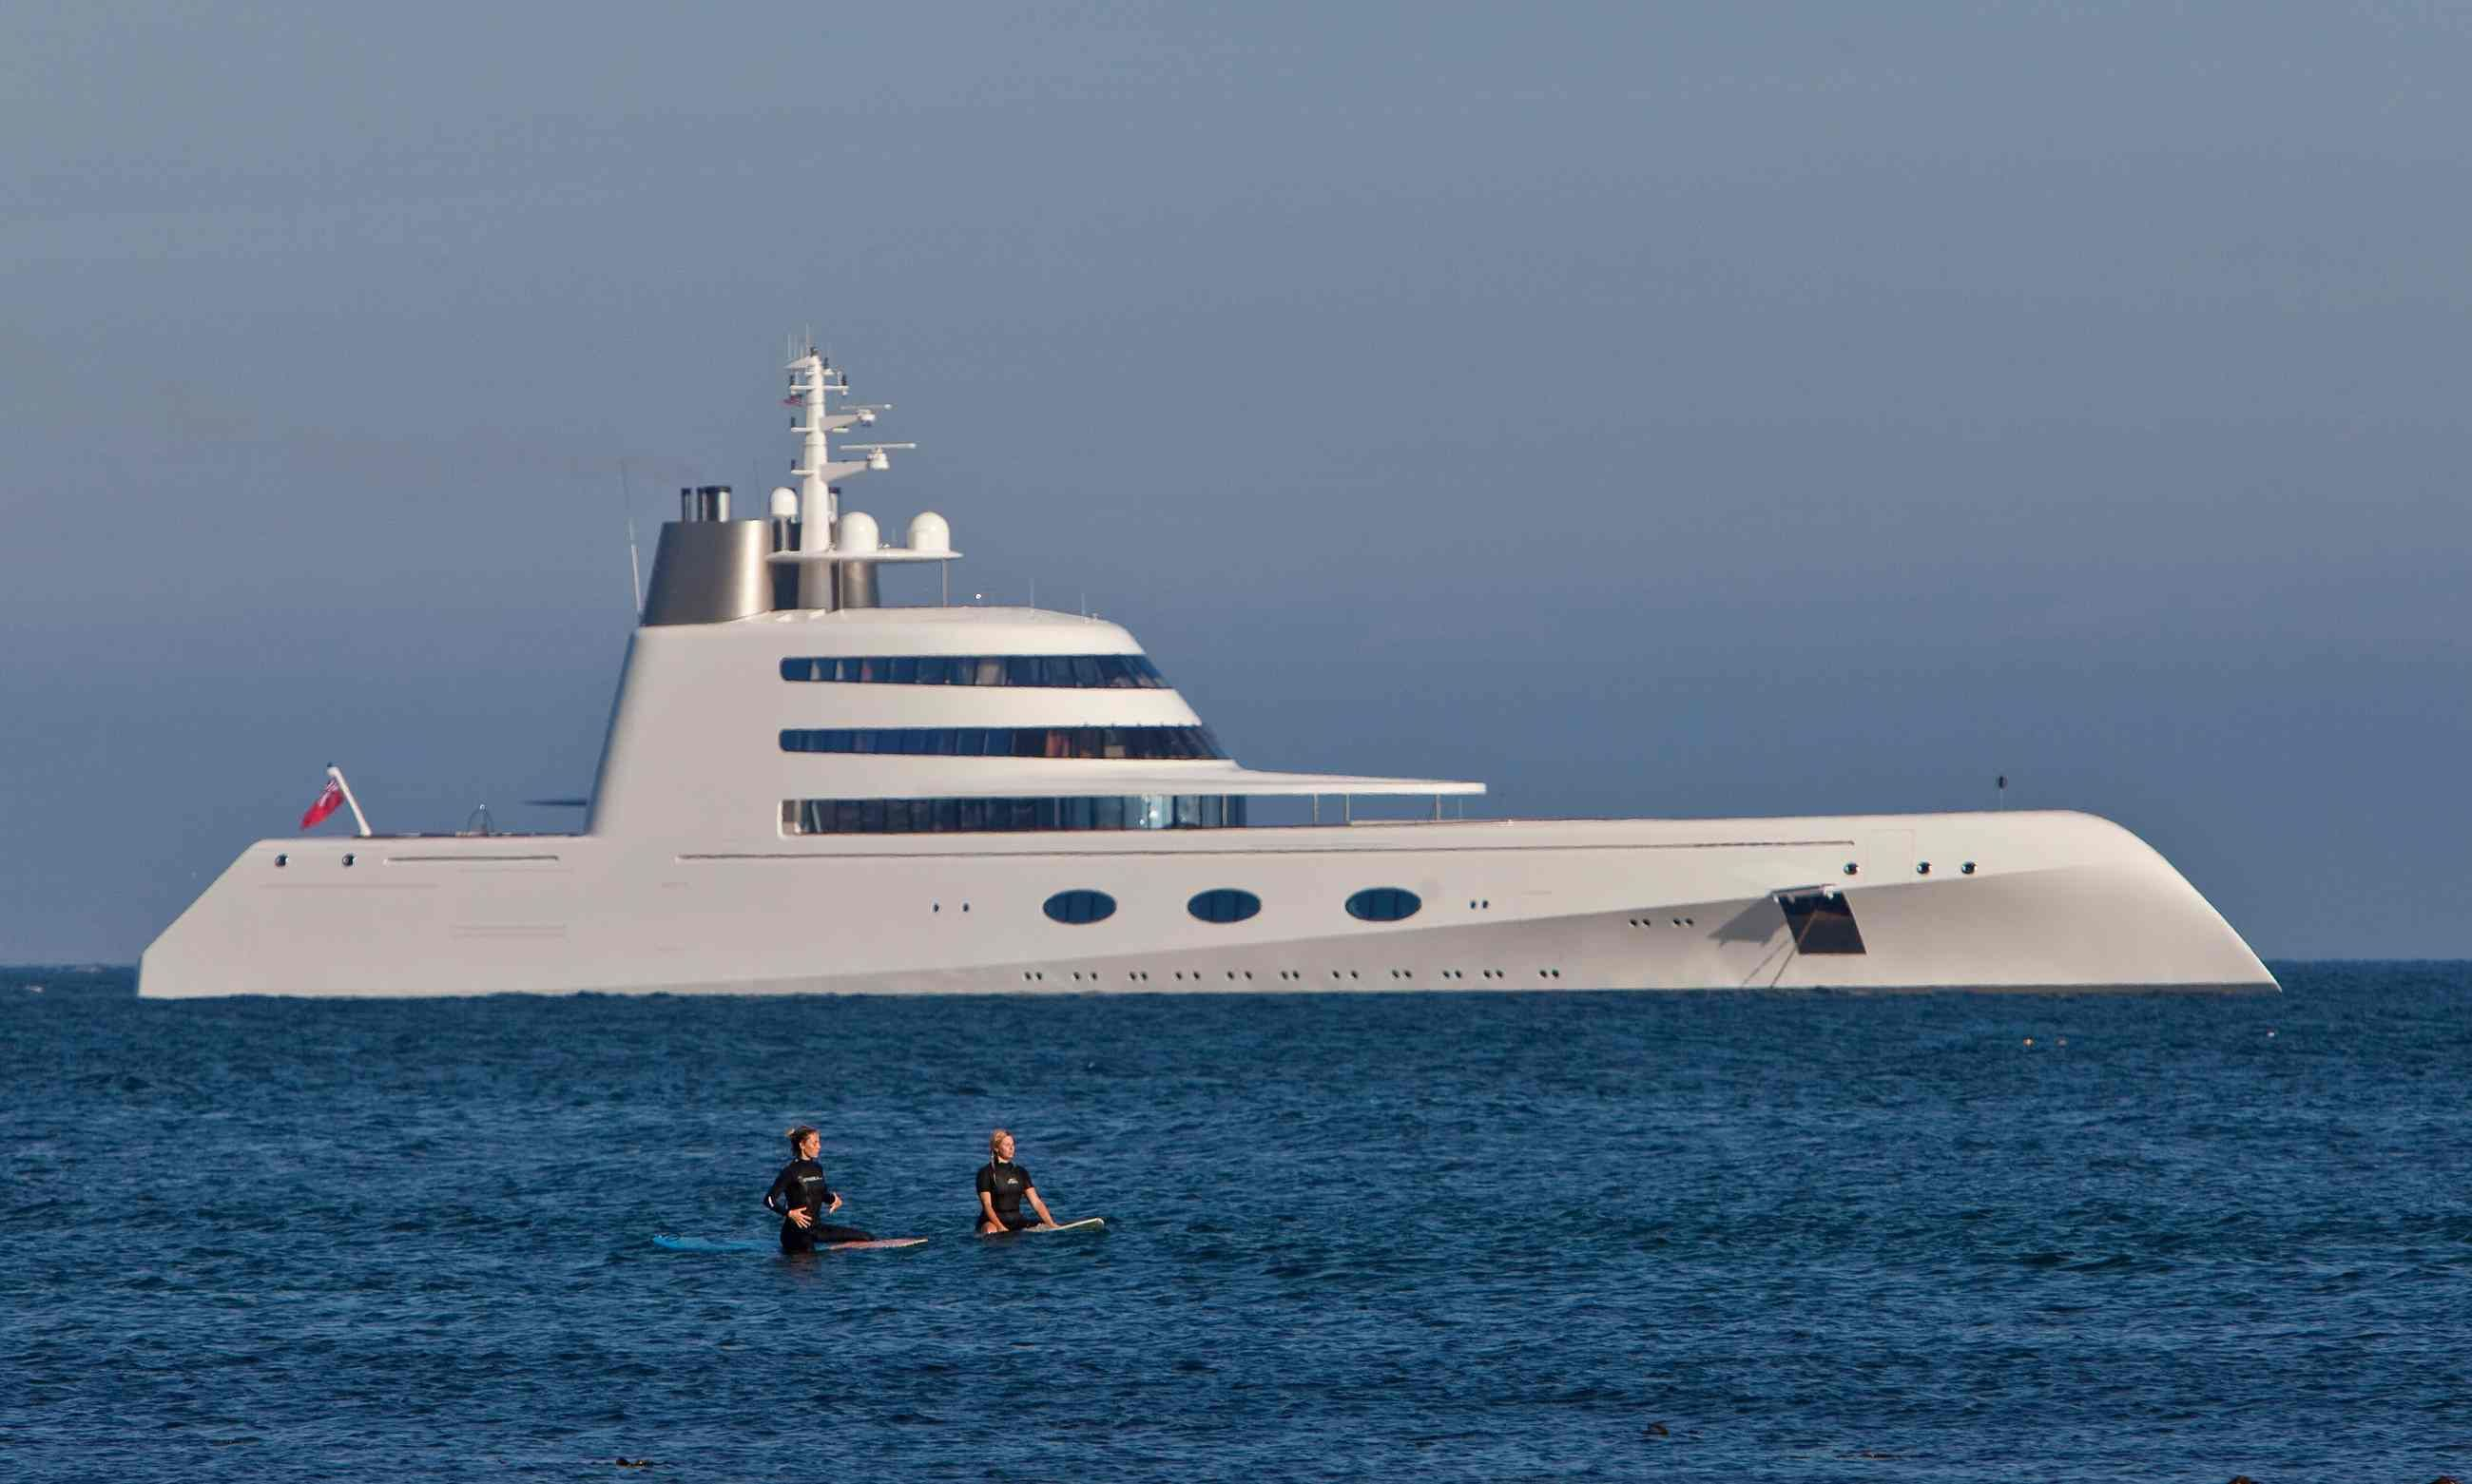 Superyachts And Bragging Rights Why The Superrich Love Their - Giga yacht takes luxury oil tanker sized extreme